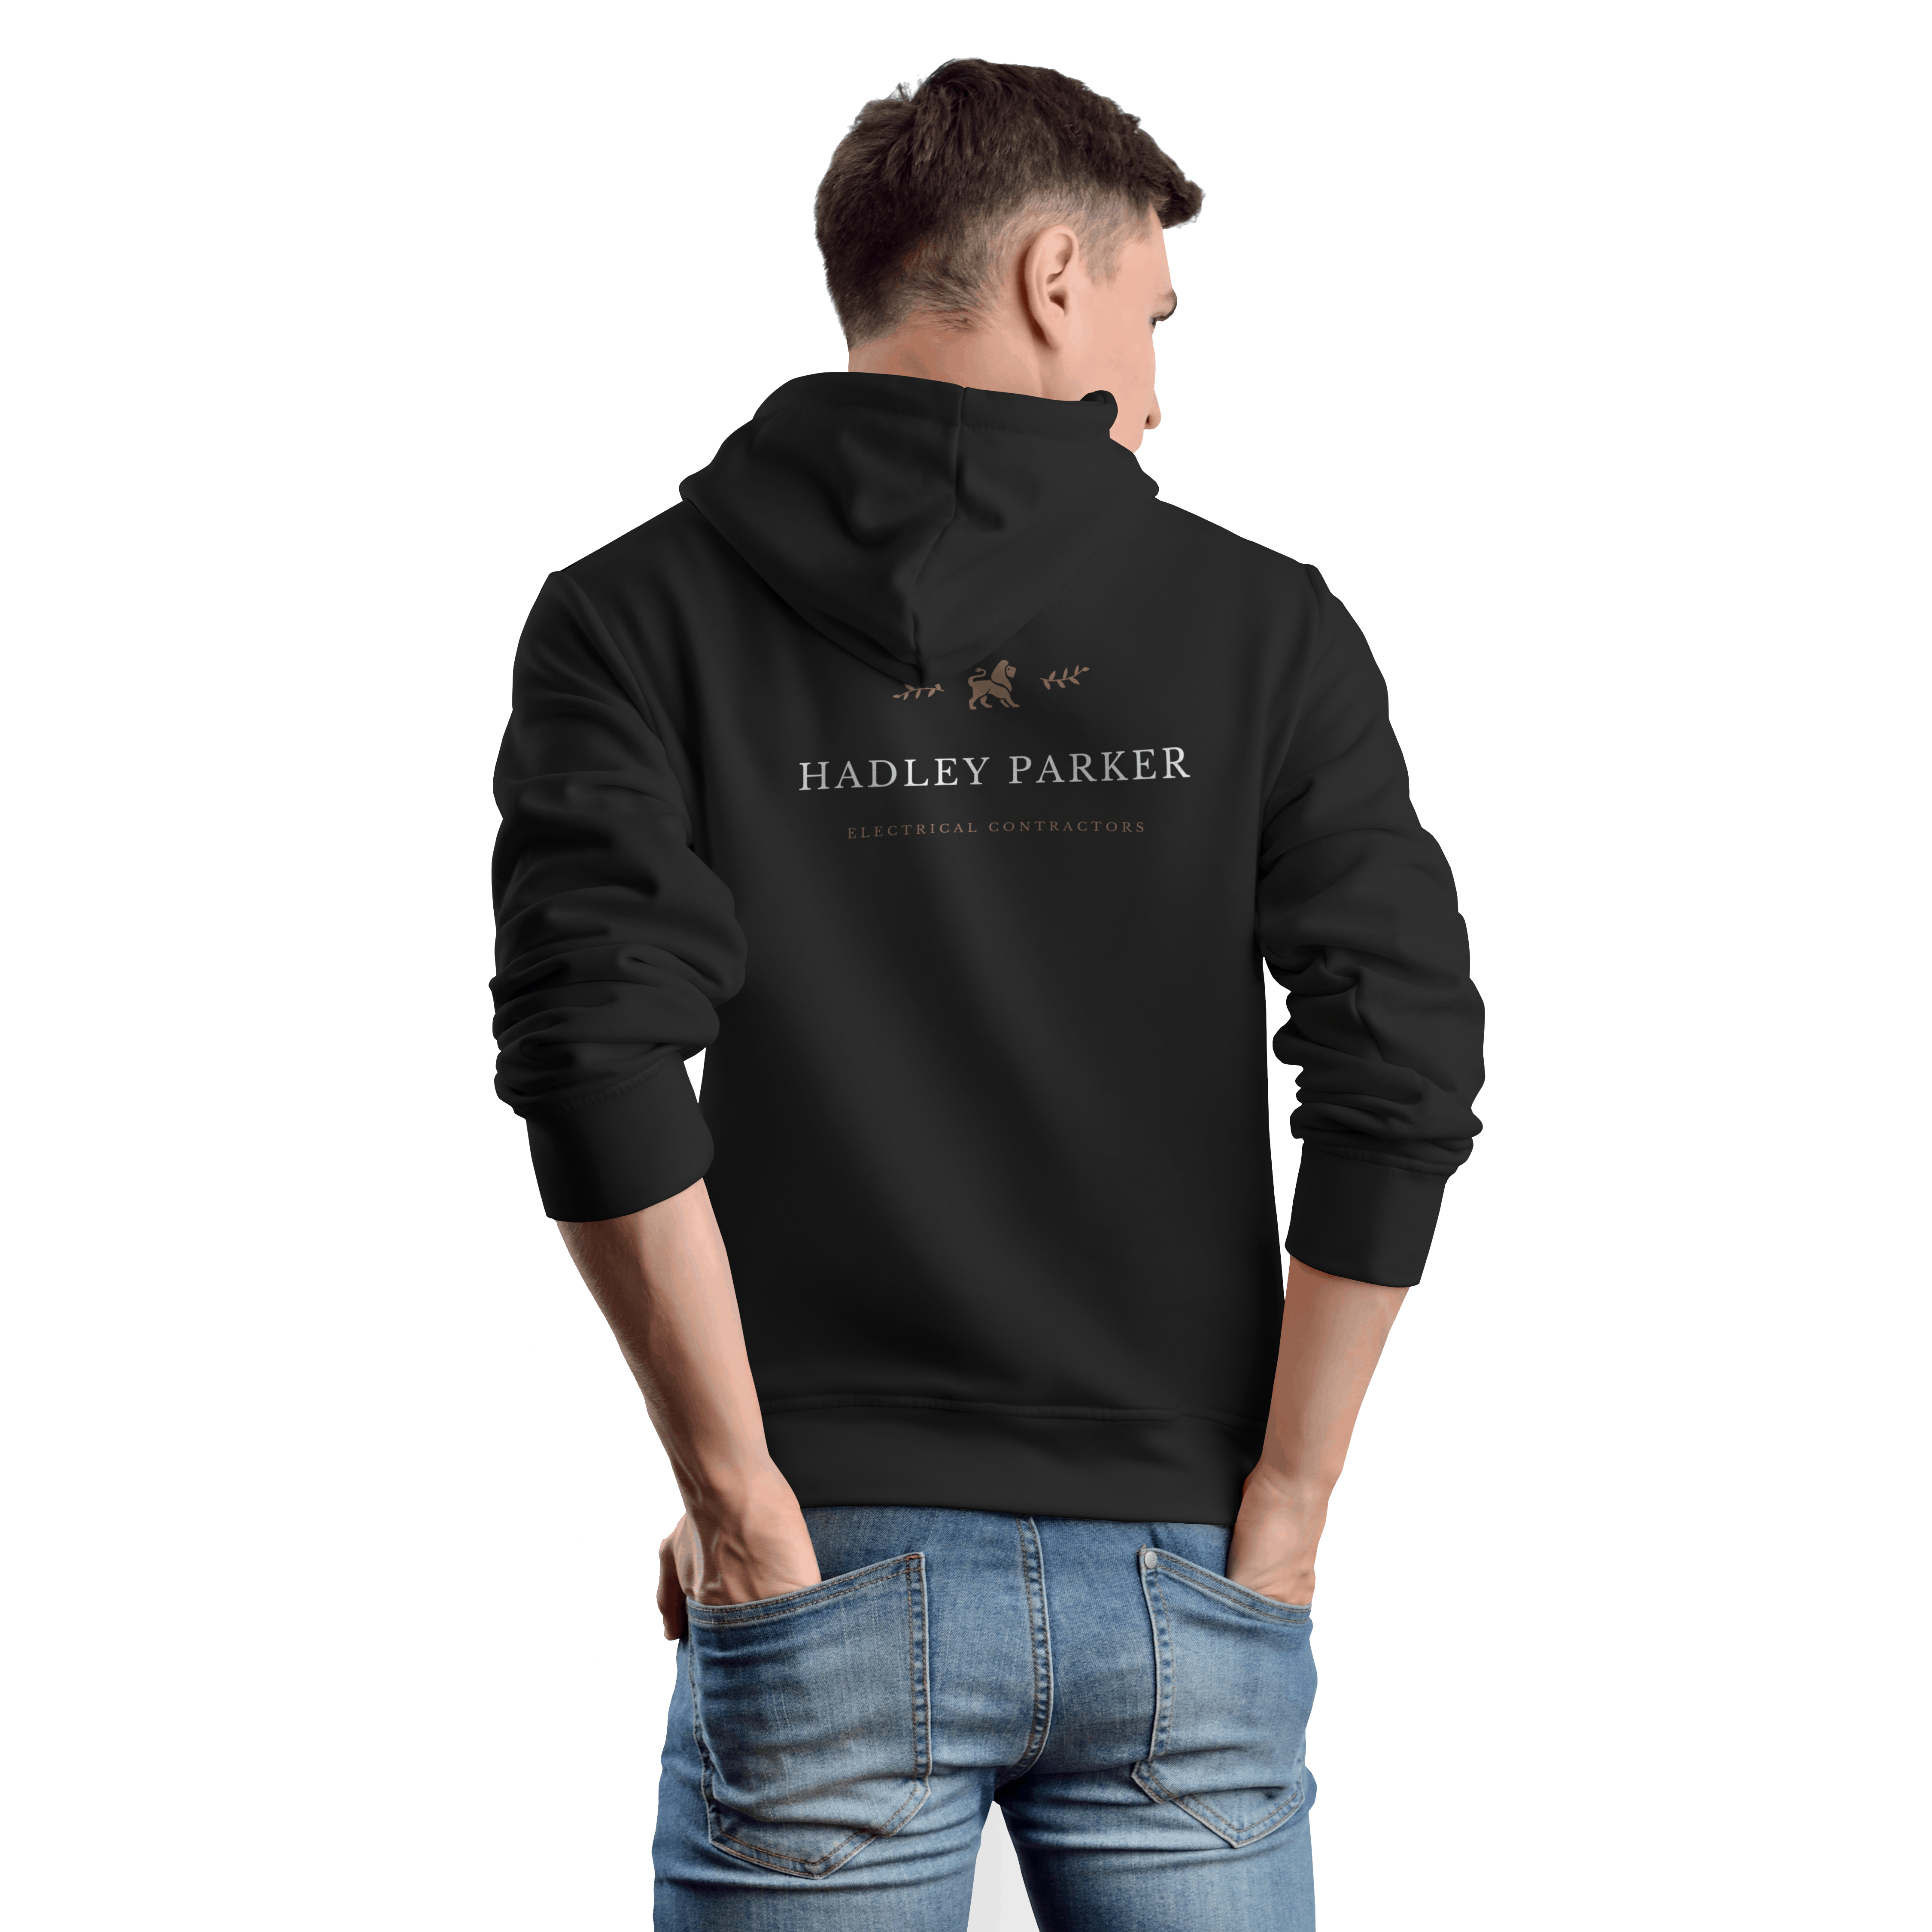 https://hadleyparker.com/wp-content/uploads/2020/10/HP-Hoodie-Photoshoot.png